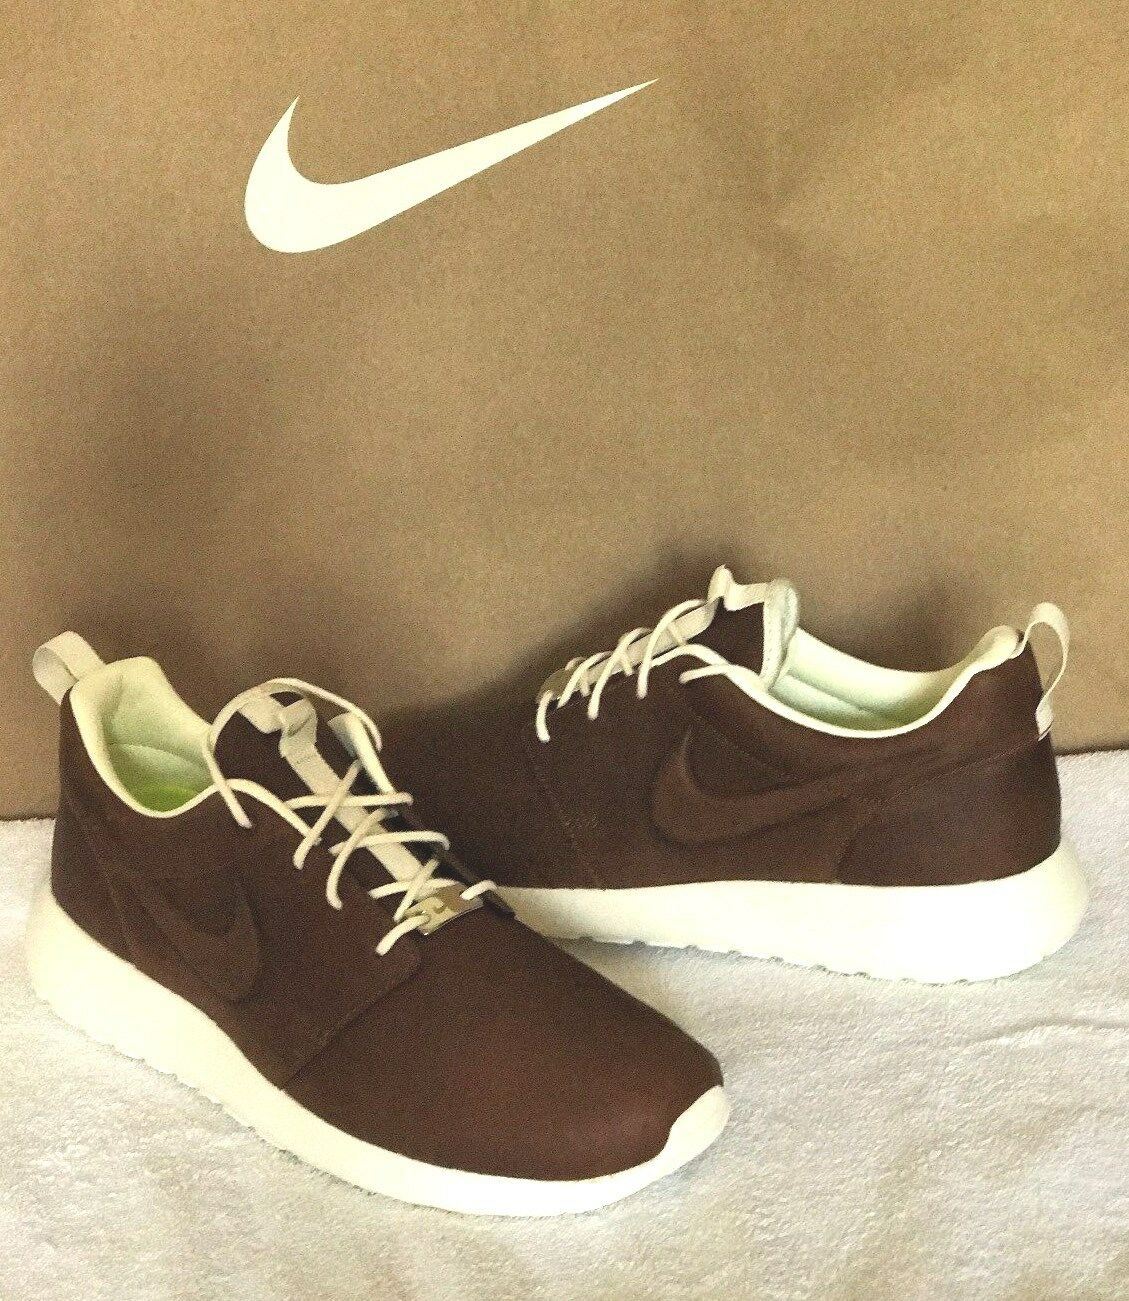 Nike Brown Roshe Running Shoe iD Premium Leather Brown Nike - White Size 6.5 666708